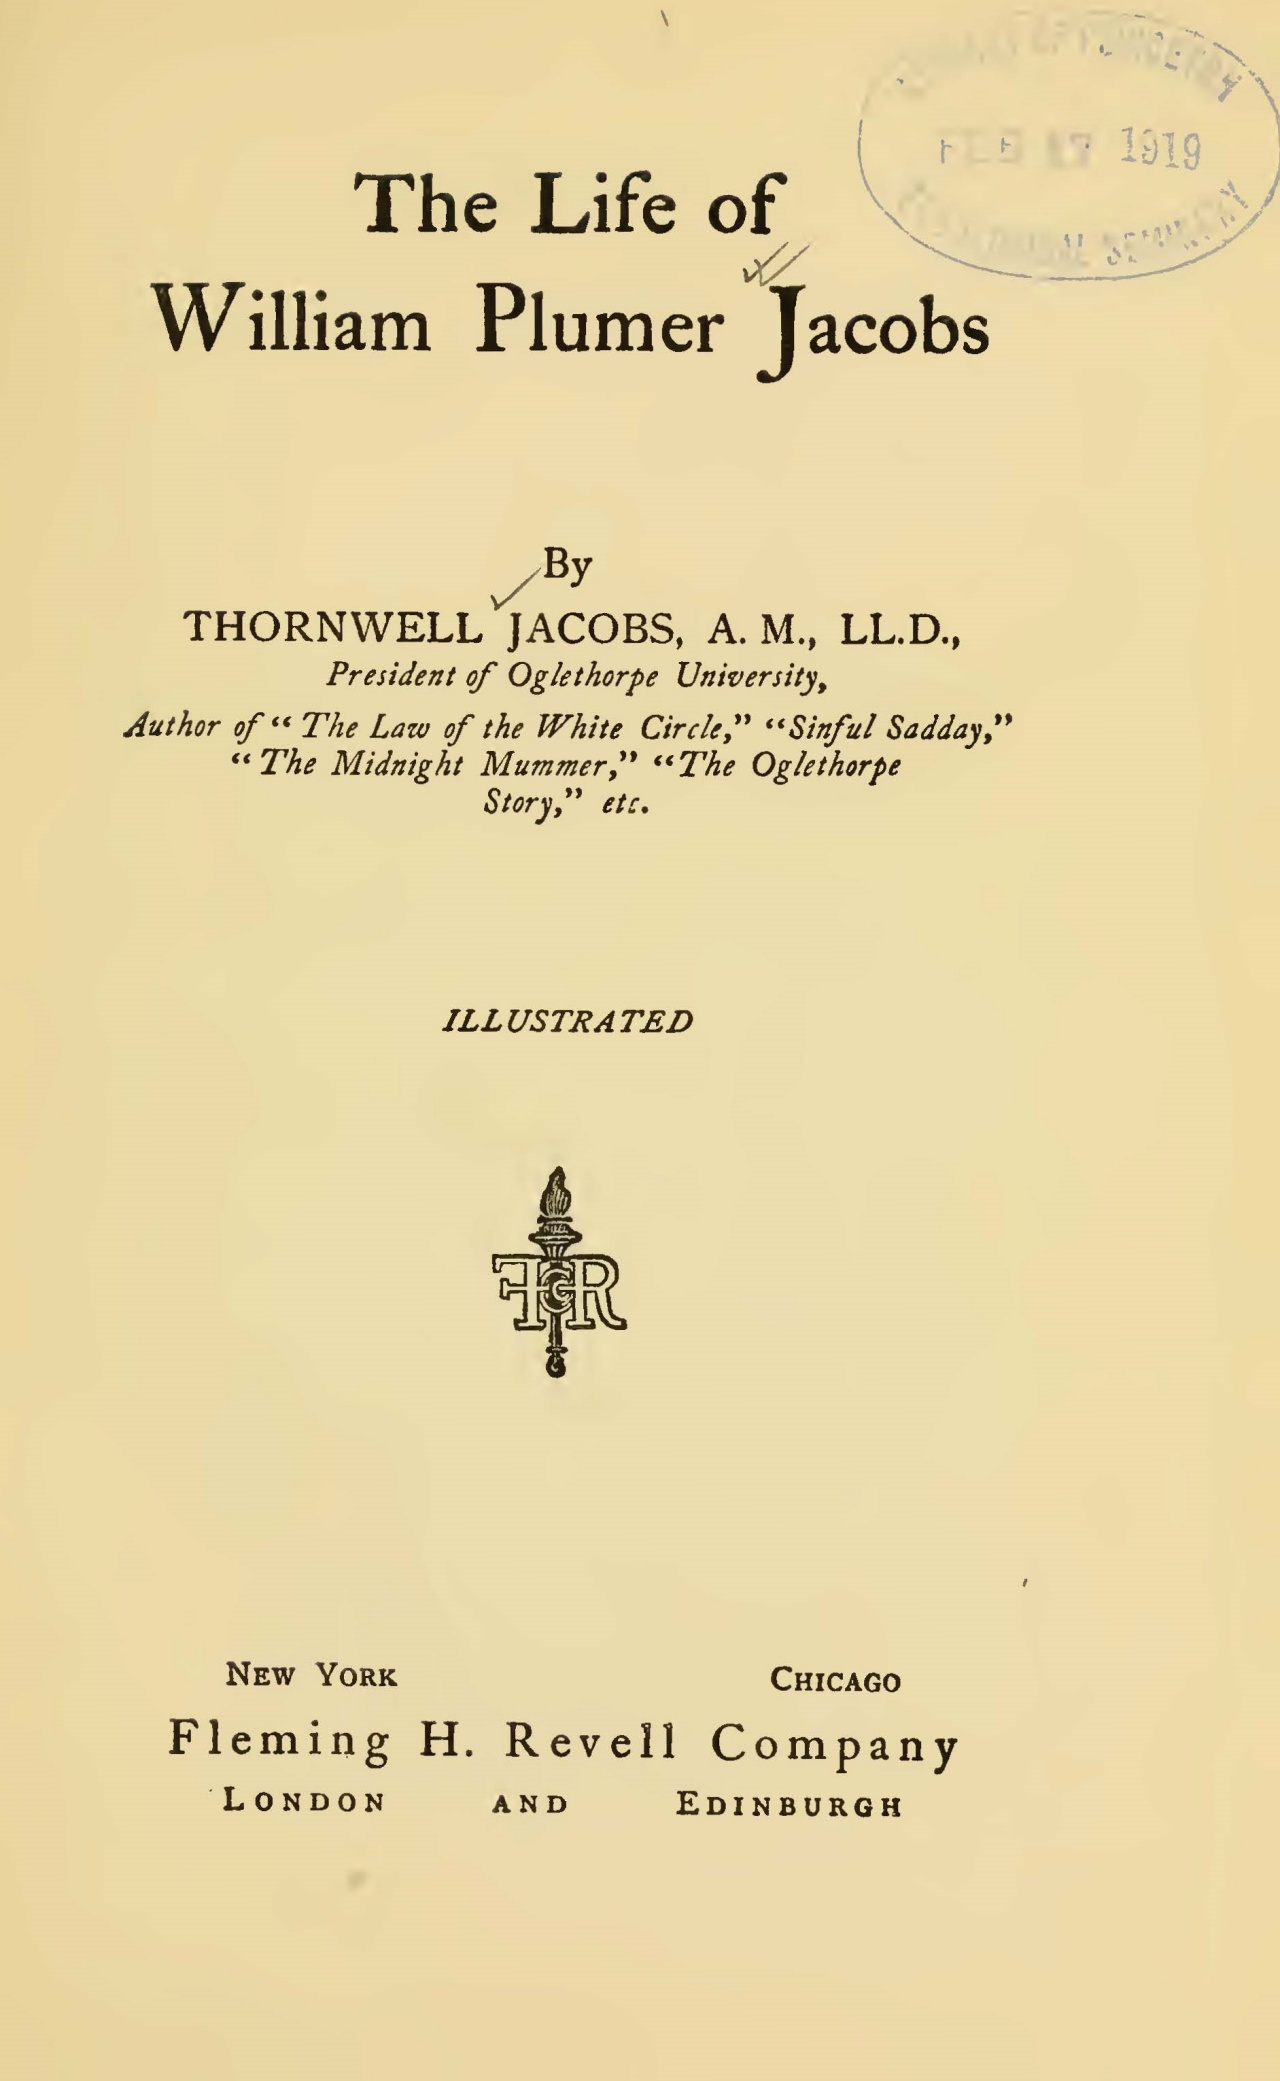 Jacobs, Thornwell, The Life of William Plumer Jacobs Title Page.jpg